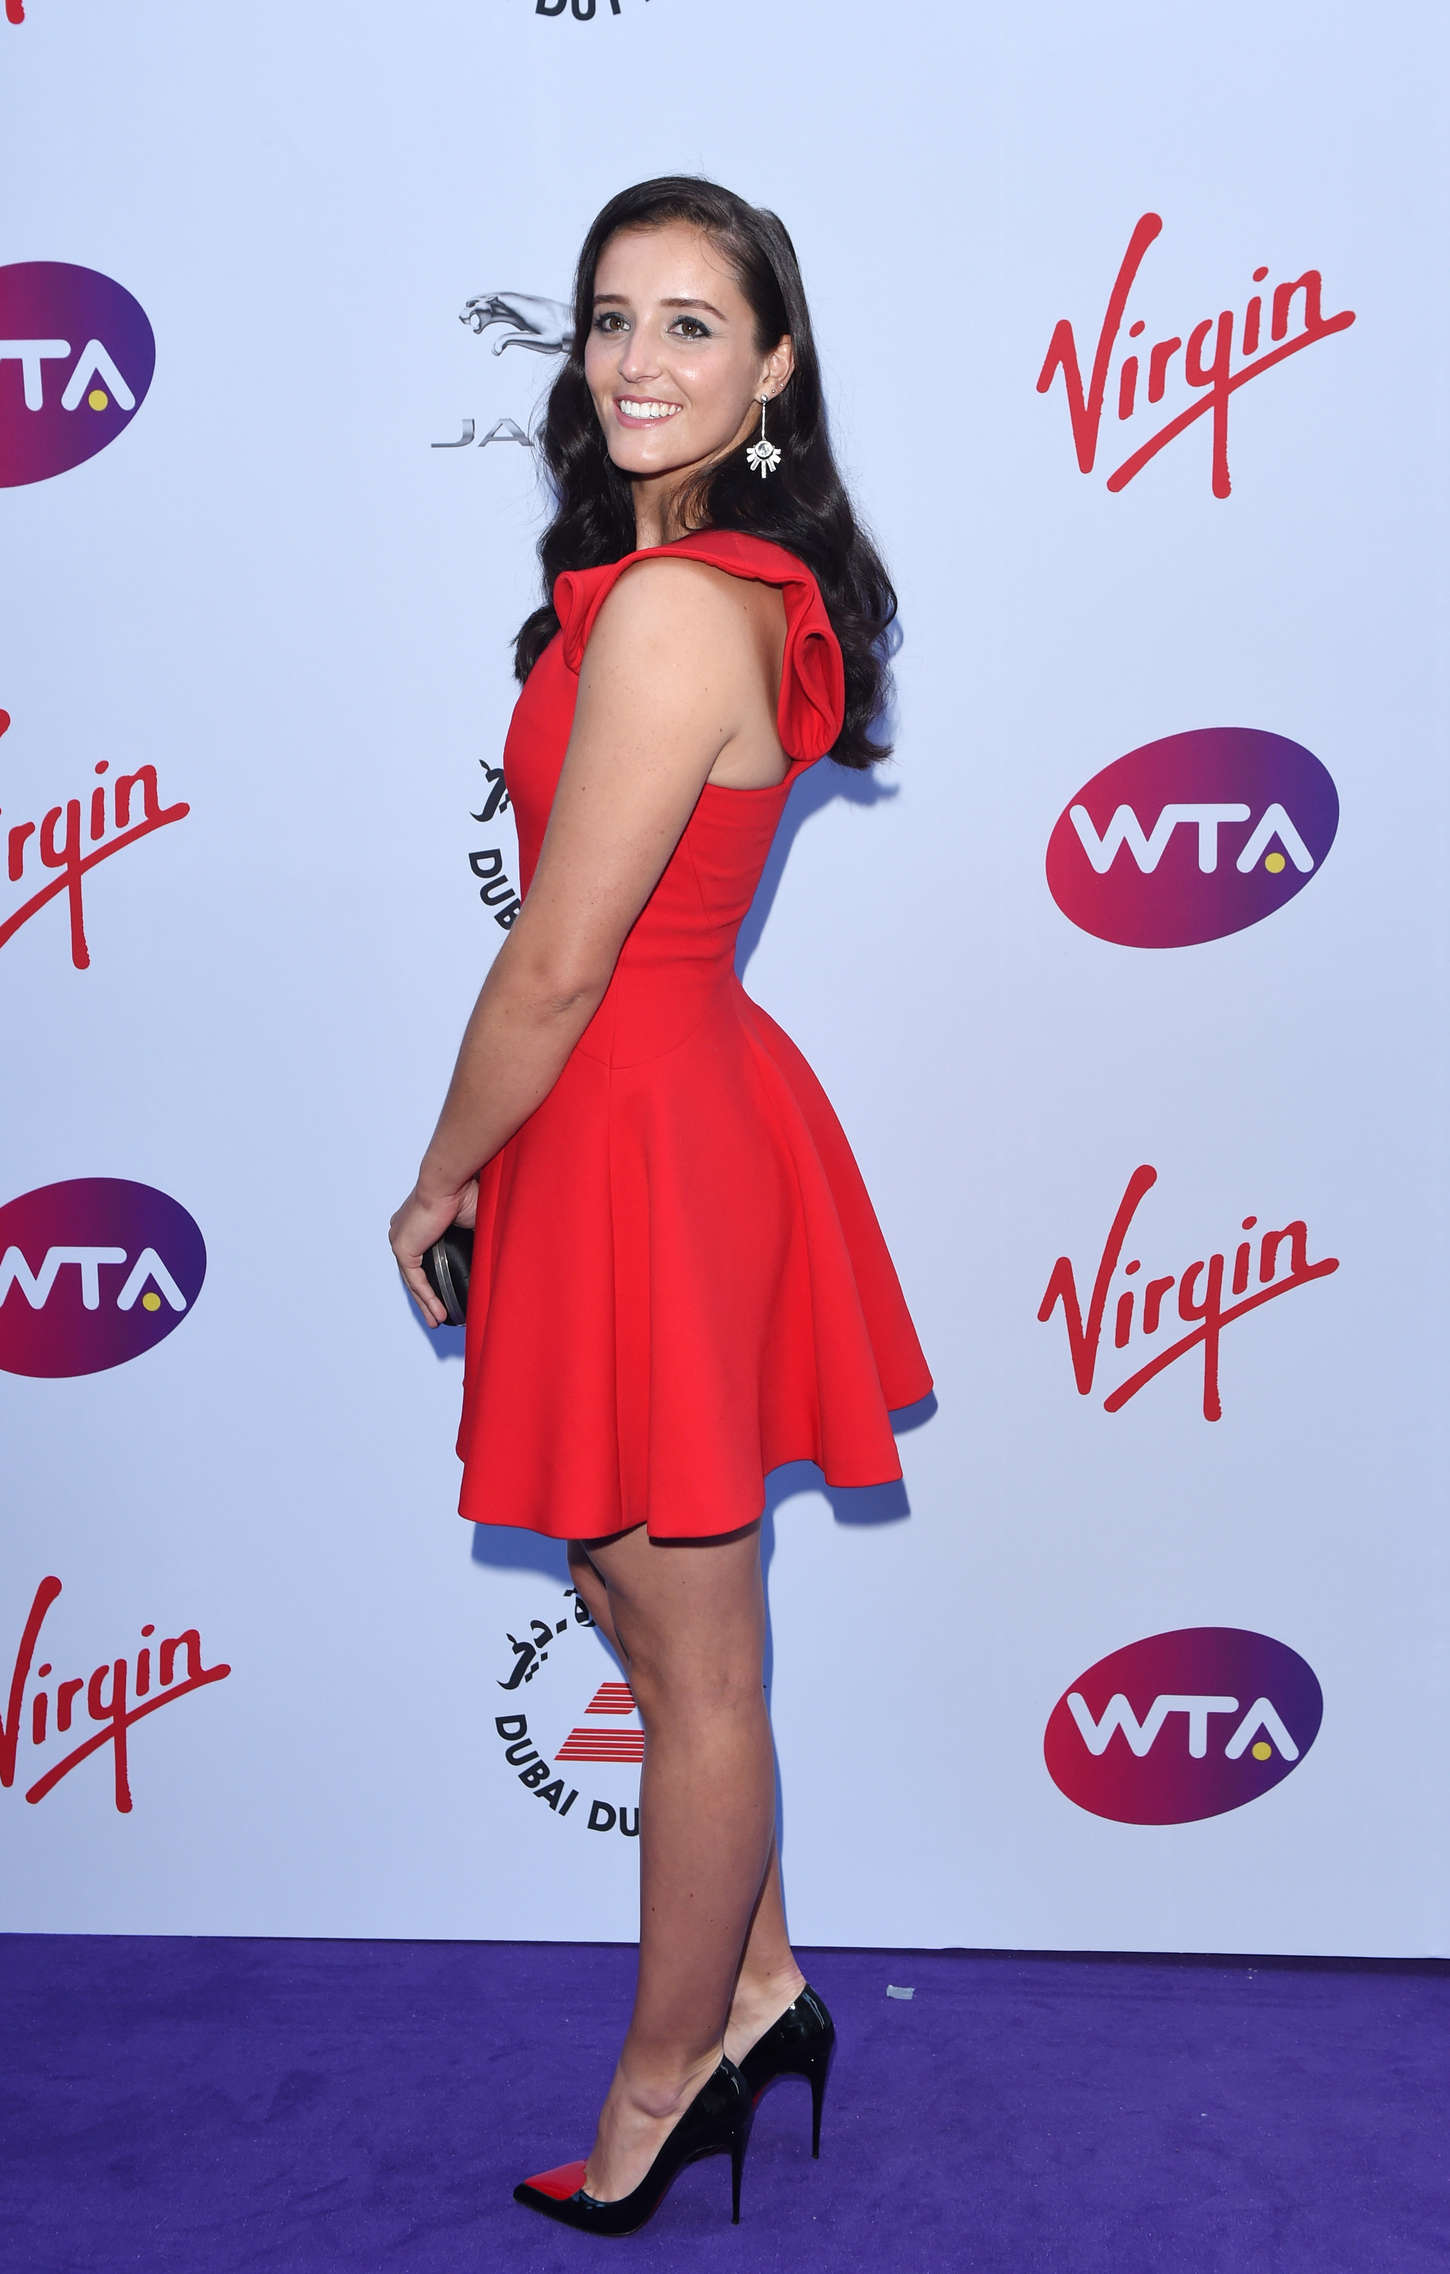 Laura Robson WTA Pre-Wimbledon Party in London